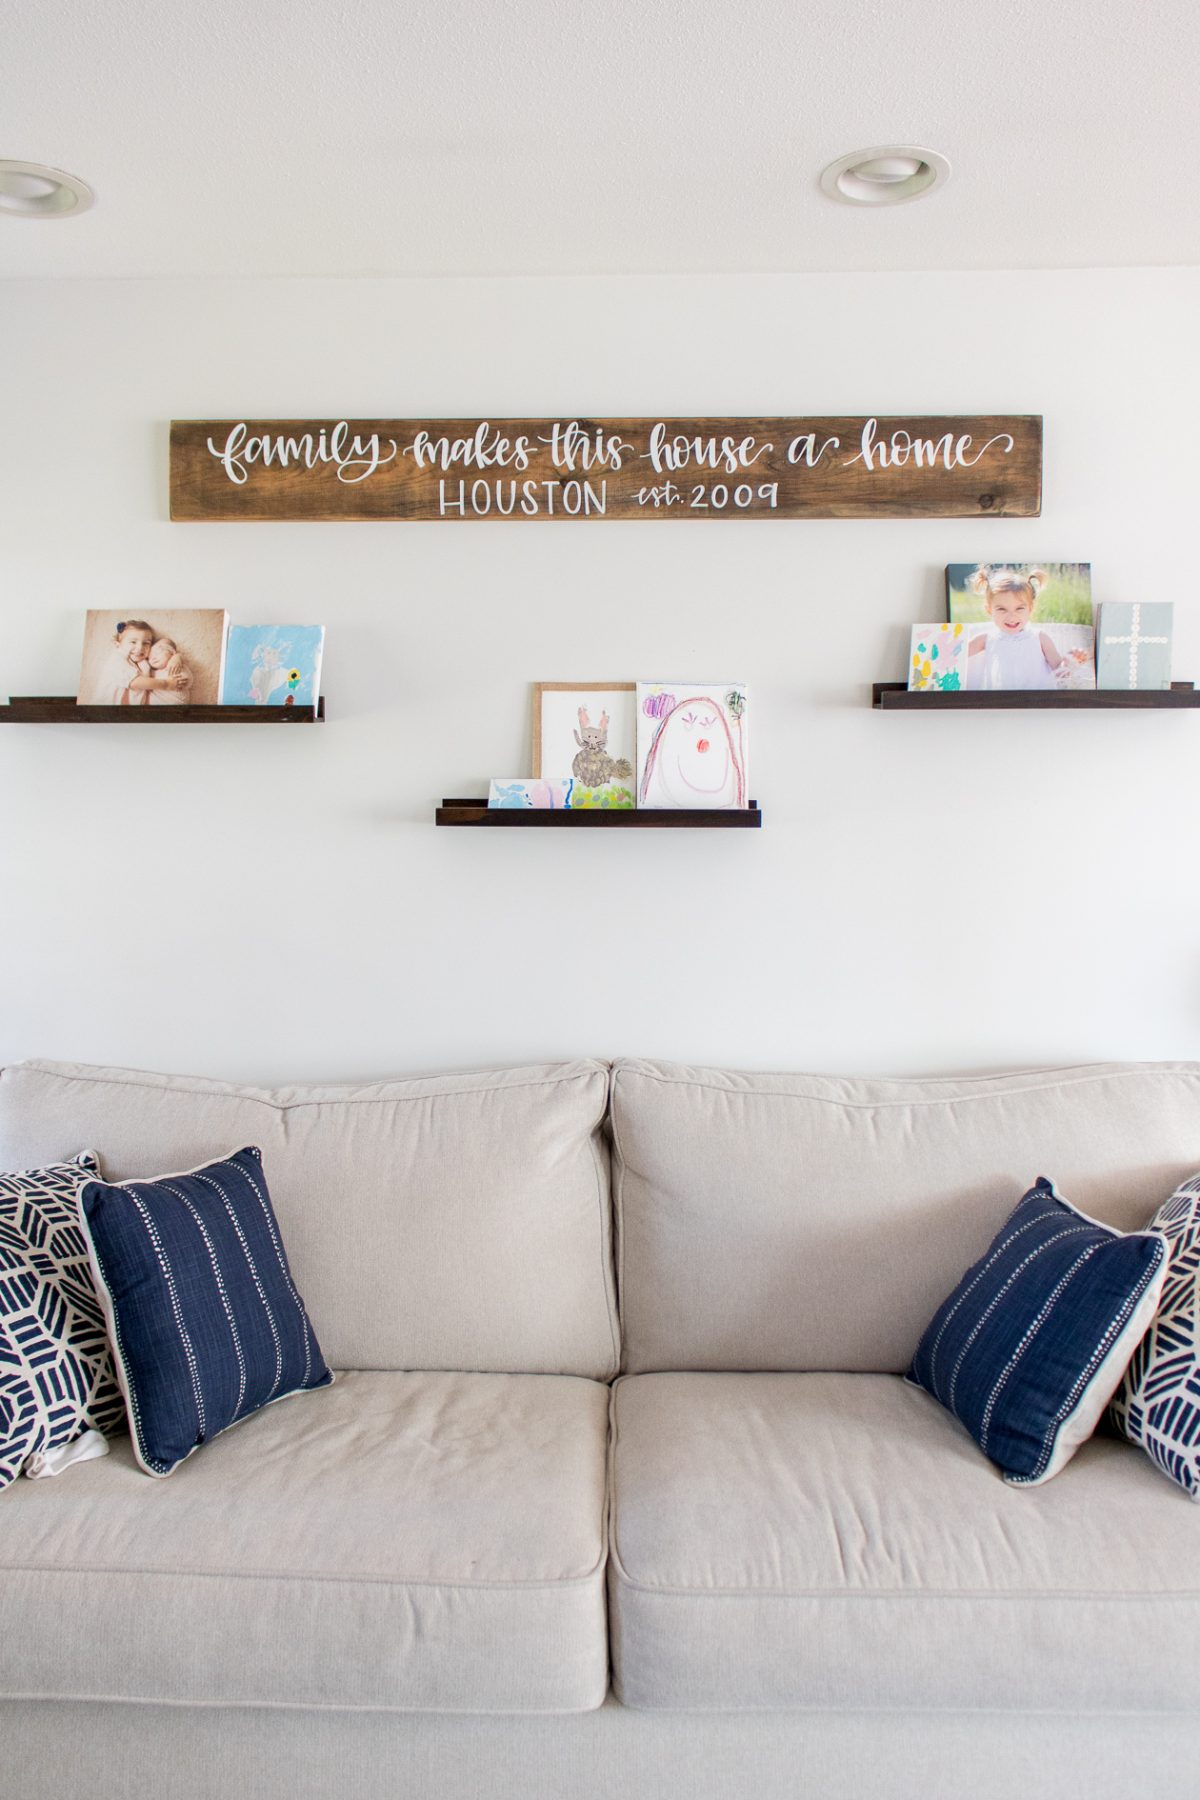 Living room couch with sign above that says Family Makes This House a Home and three floating shelves with children's photos and art work